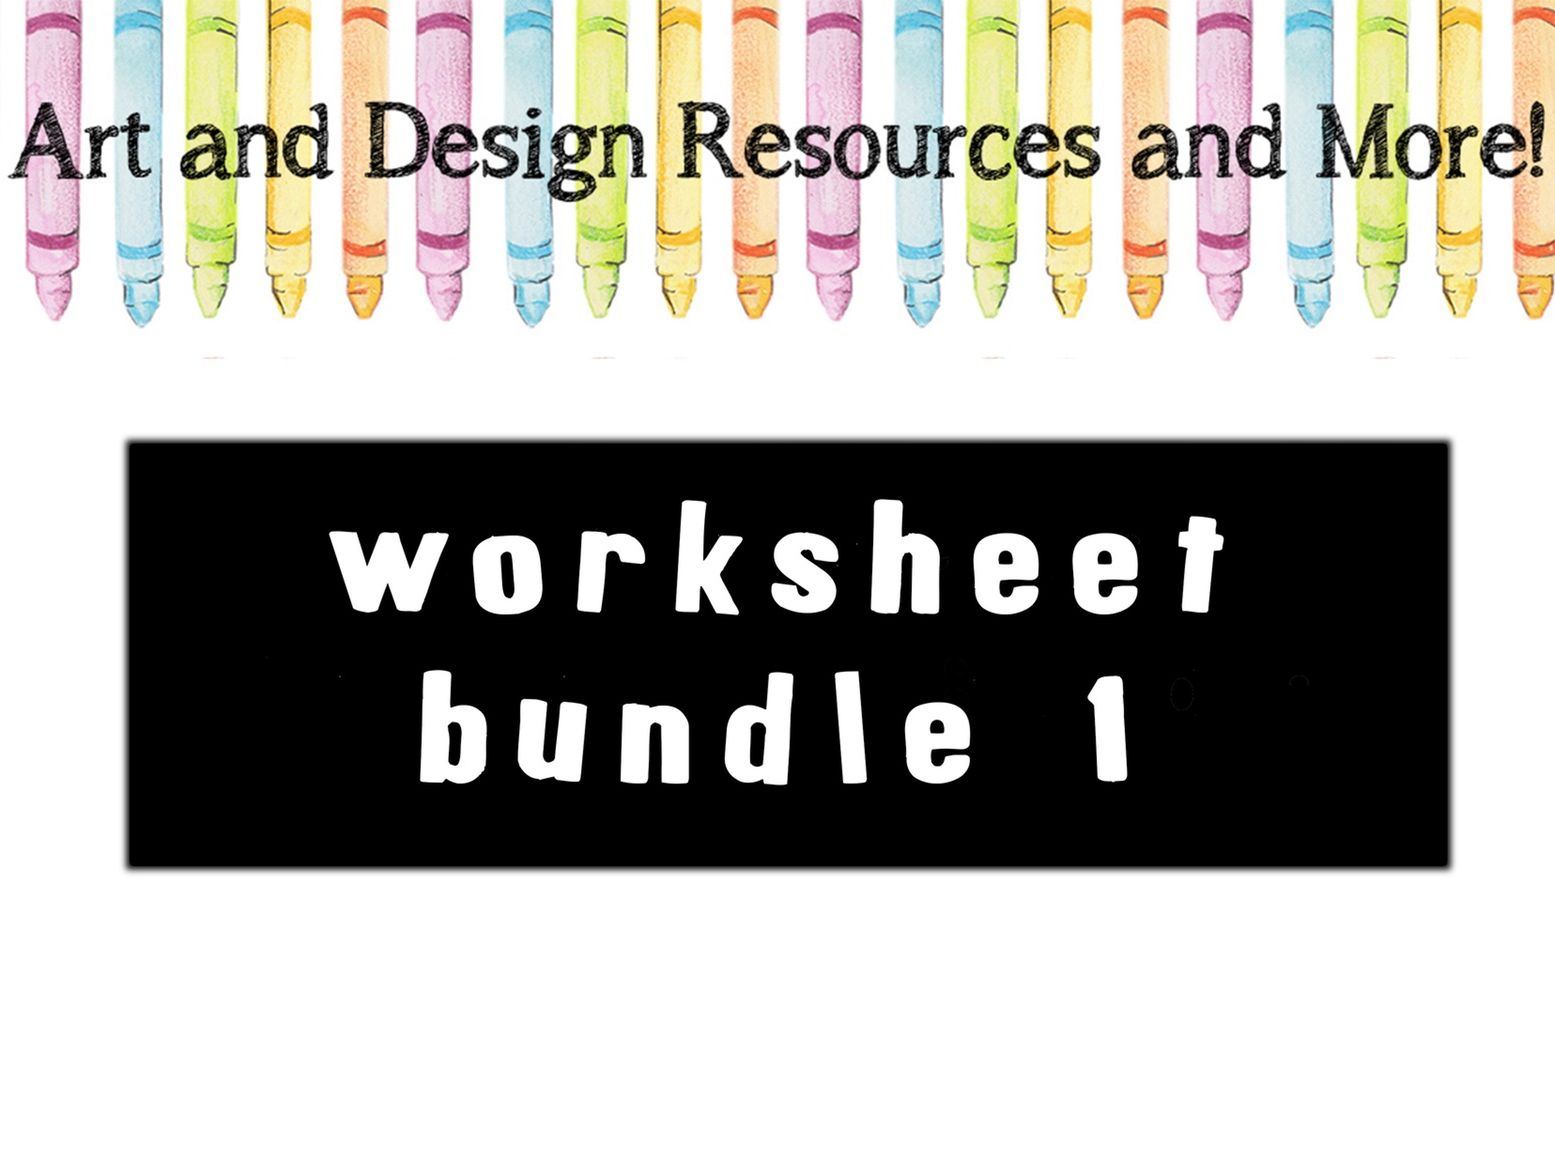 Worksheet bundle 1